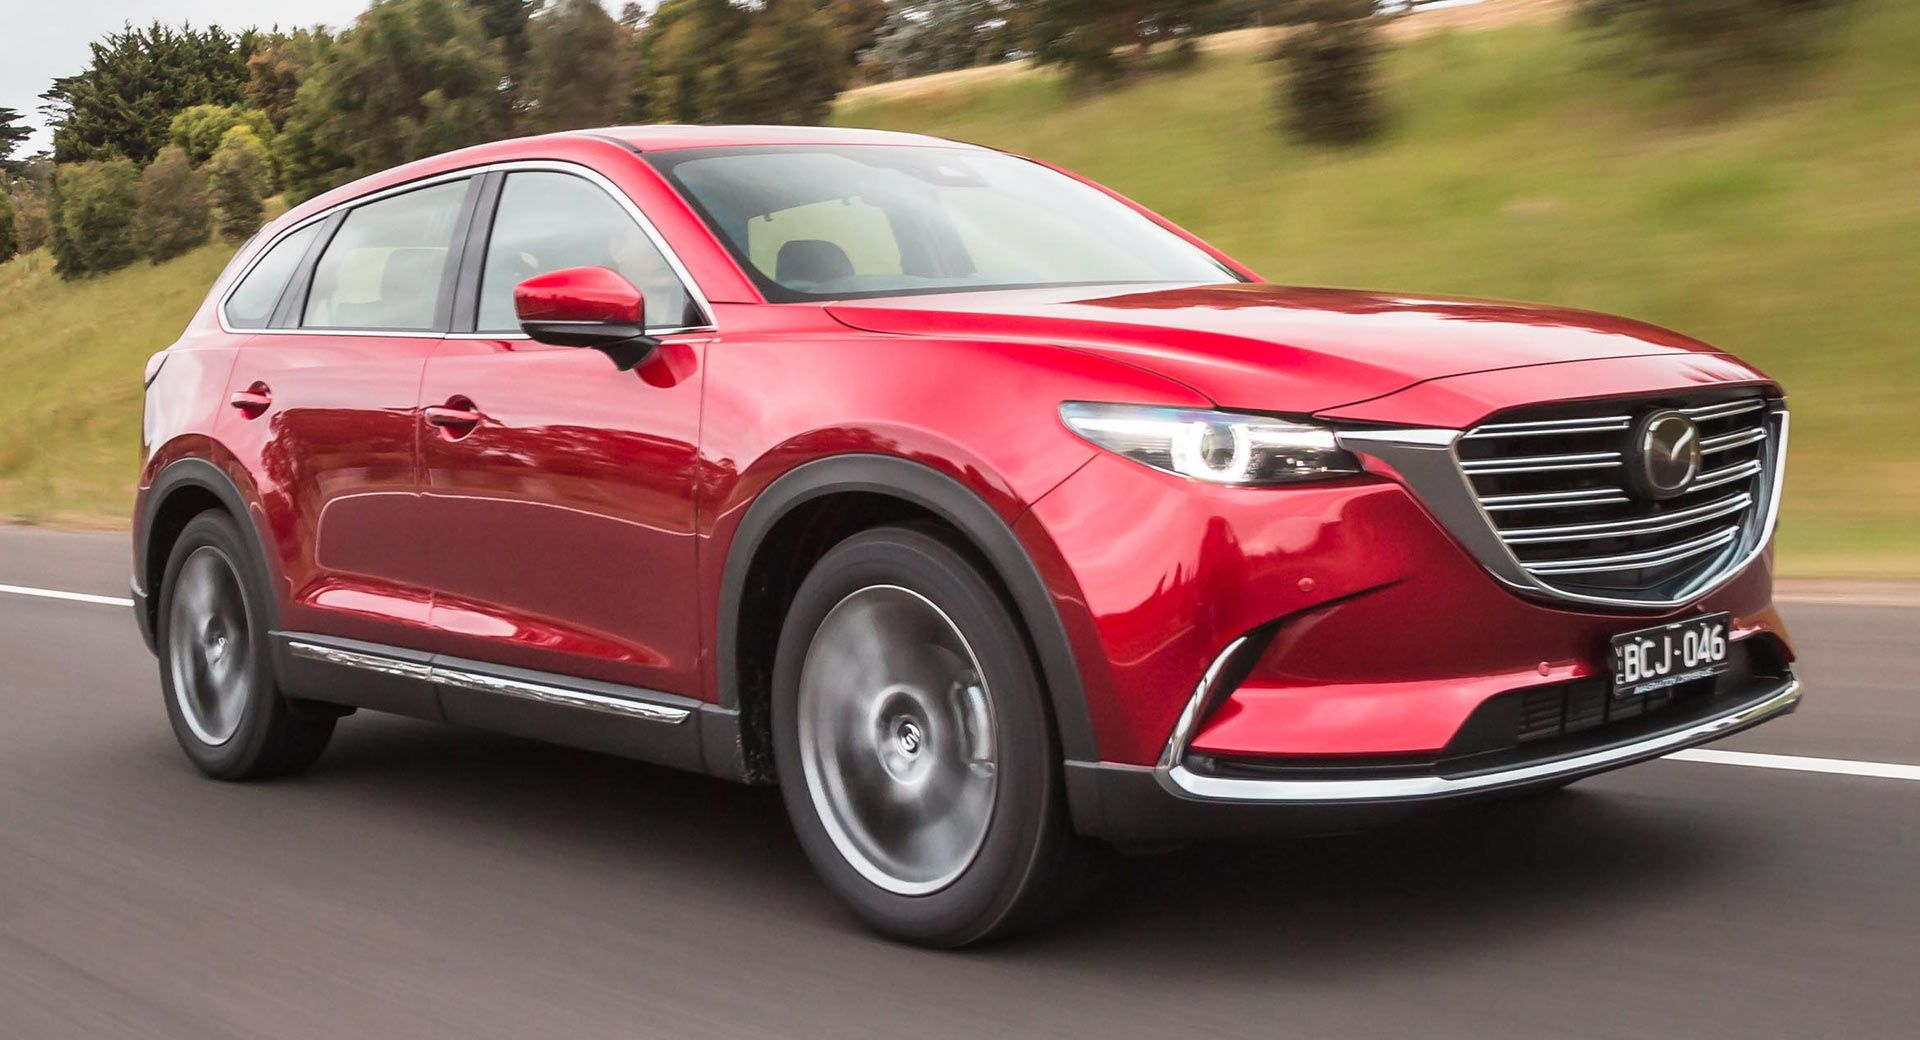 Australia S Mazda Cx 9 Updated For 2020 With New All Wheel Drive Tech And Safety Features Australia Galleries Mazda Mazdacx 9 Su In 2020 Mazda Cx 9 Mazda New Cars